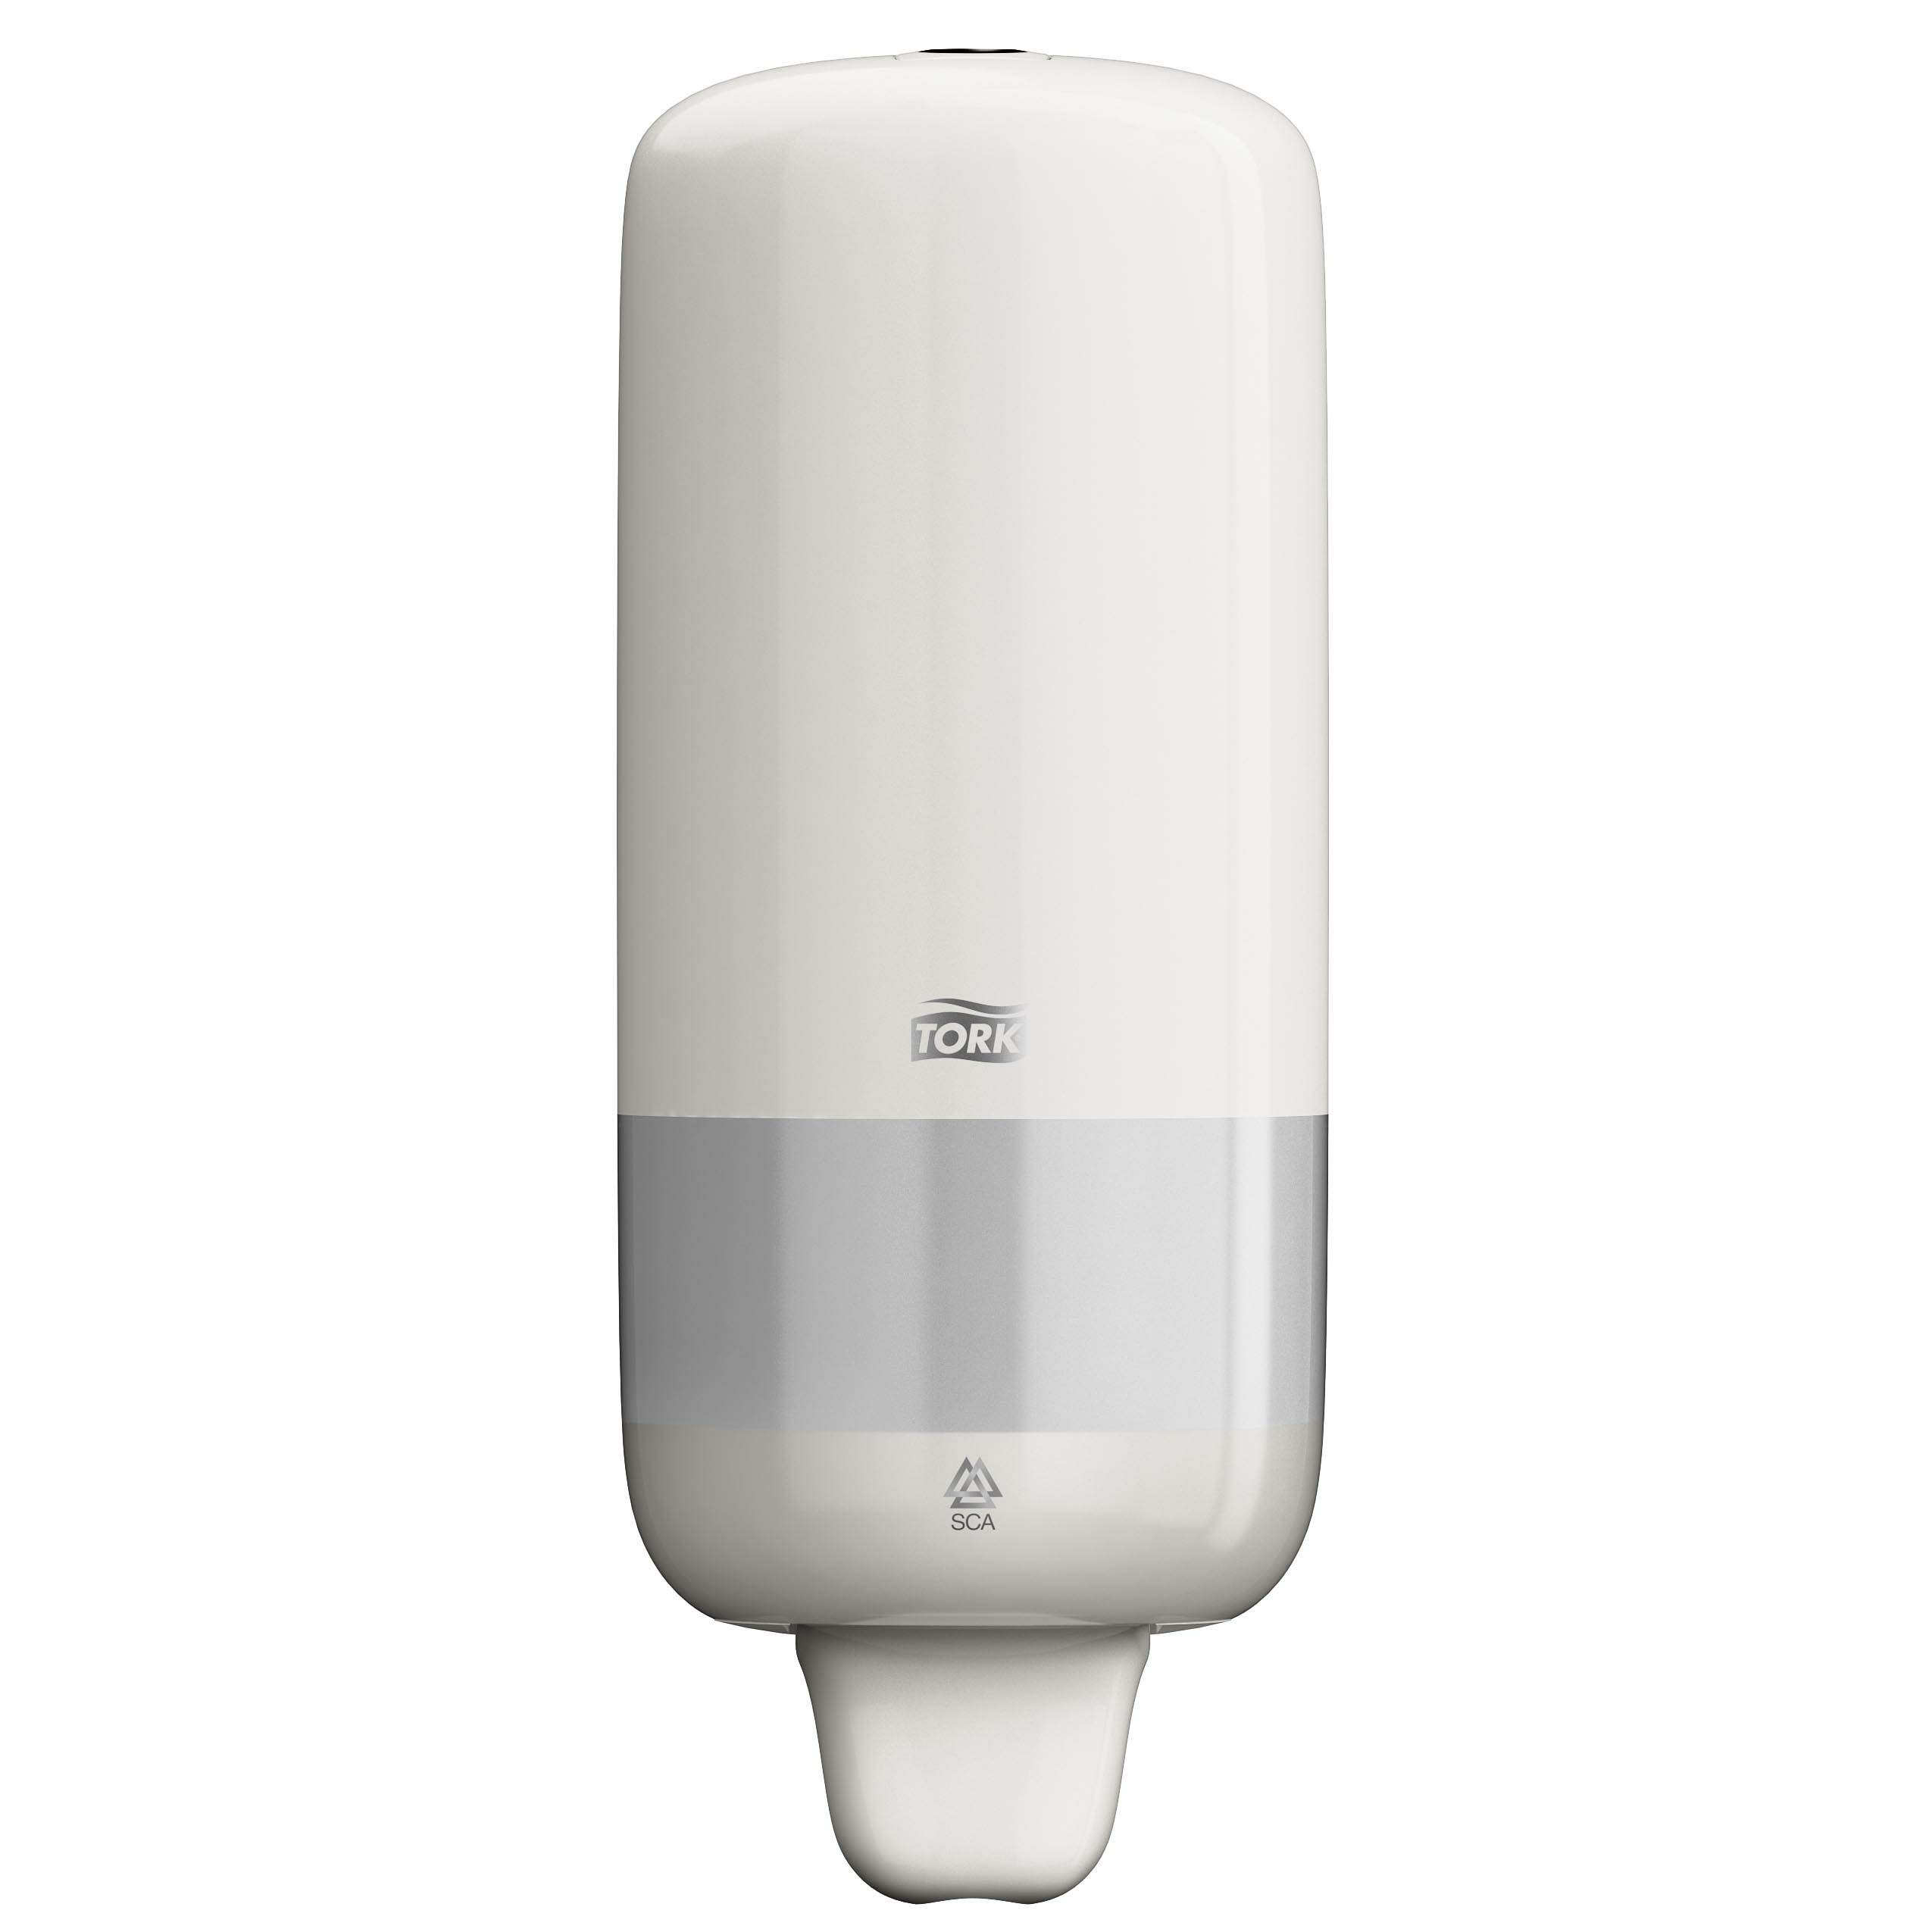 Thumbnail - TORK SOAP DISPENSER FOR TP331 & TP332